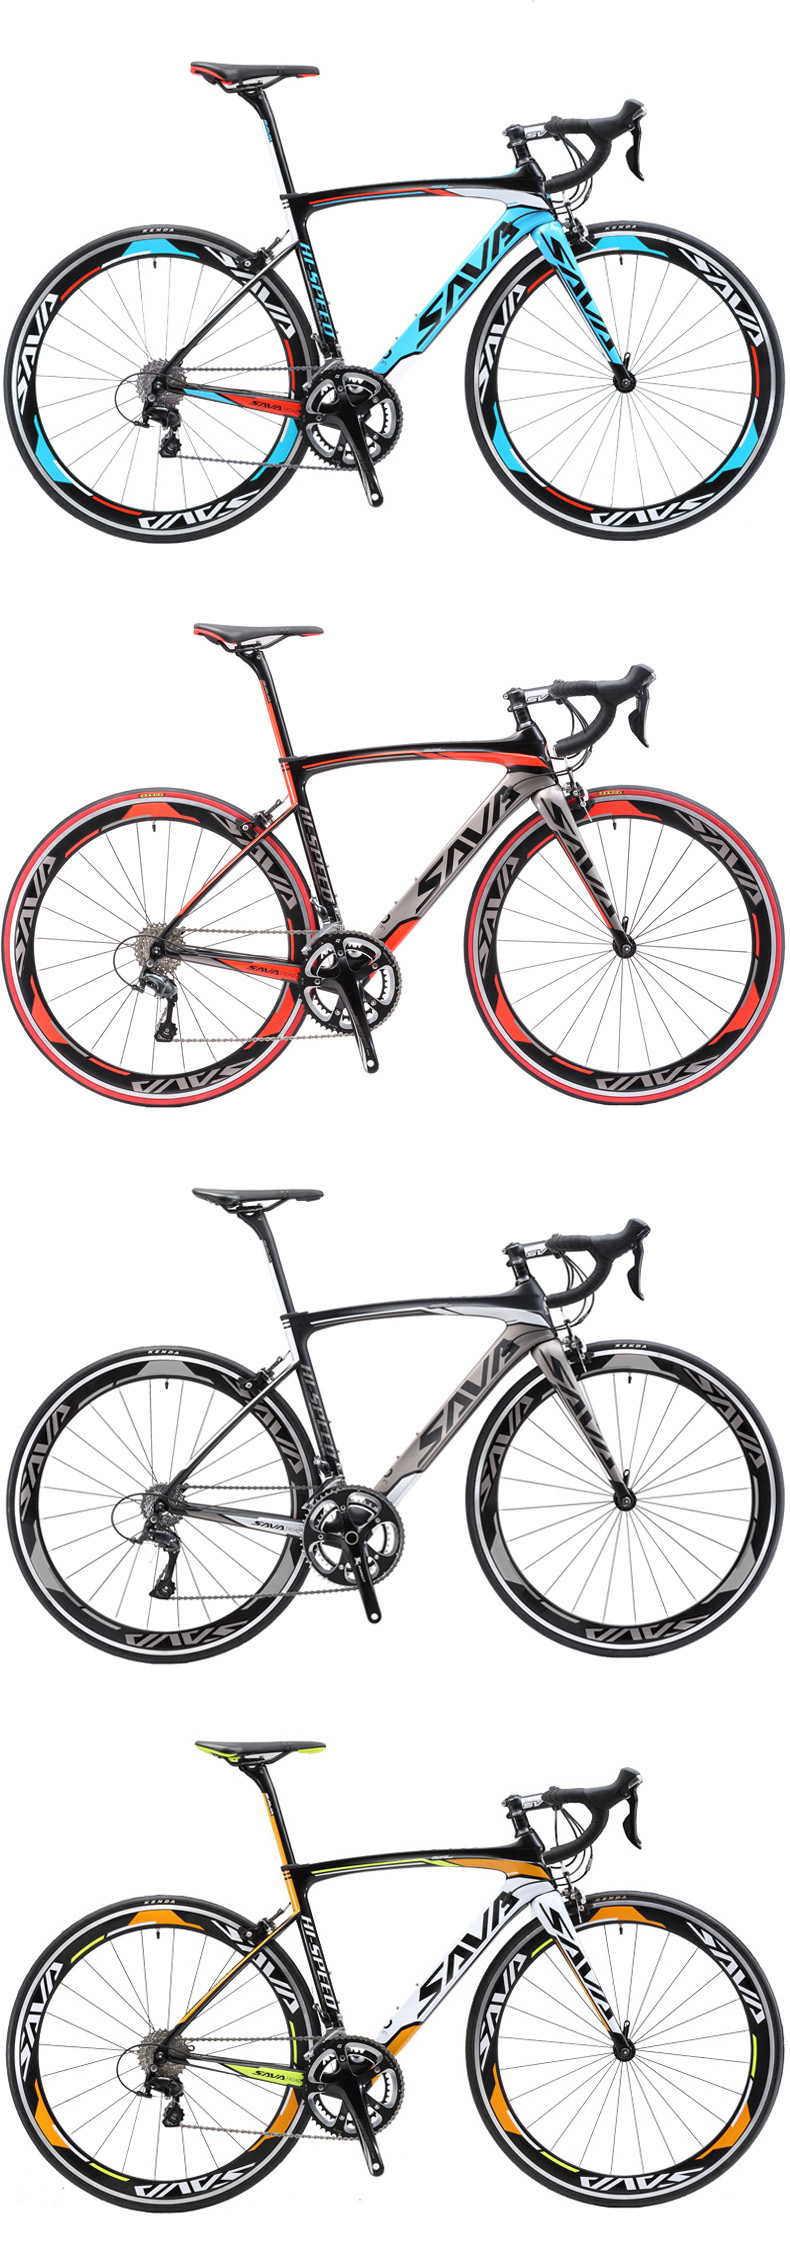 HTB1jcC br3XS1JjSZFFq6AvupXaj SAVA Road Bike 700C Carbon Road Bike T700 Carbon Frame+fork Bicycle Road Speed Bike Racing with SHIMANO SORA bicicleta carretera